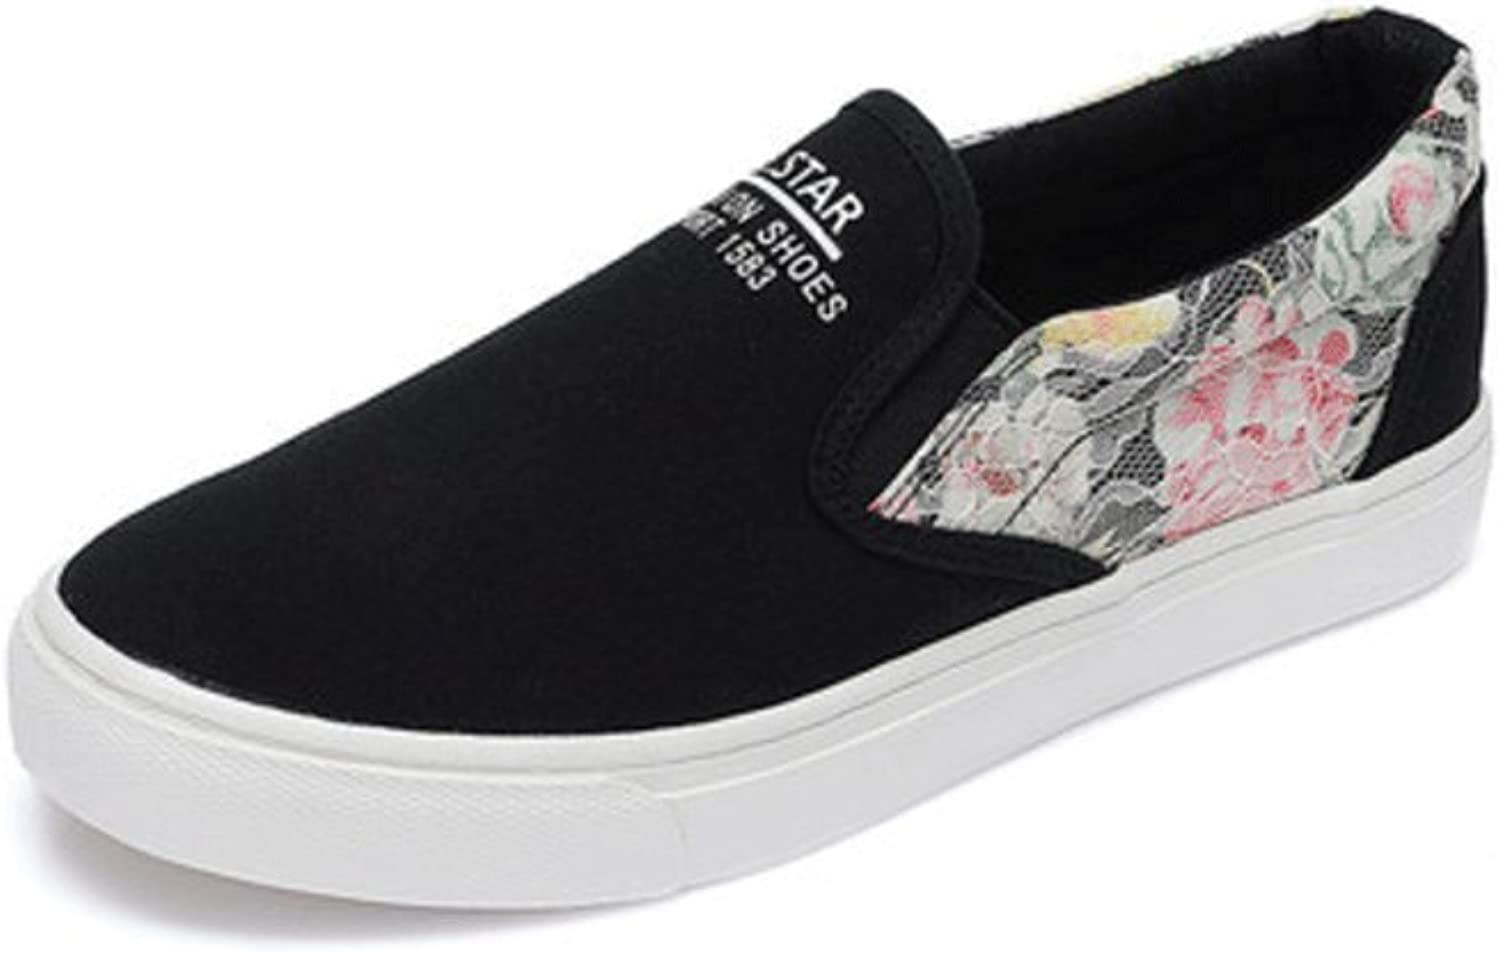 Student breathable summer canvas shoes fashion flat shoes casual board shoes ladies shoes ( color   Black , Size   38 )